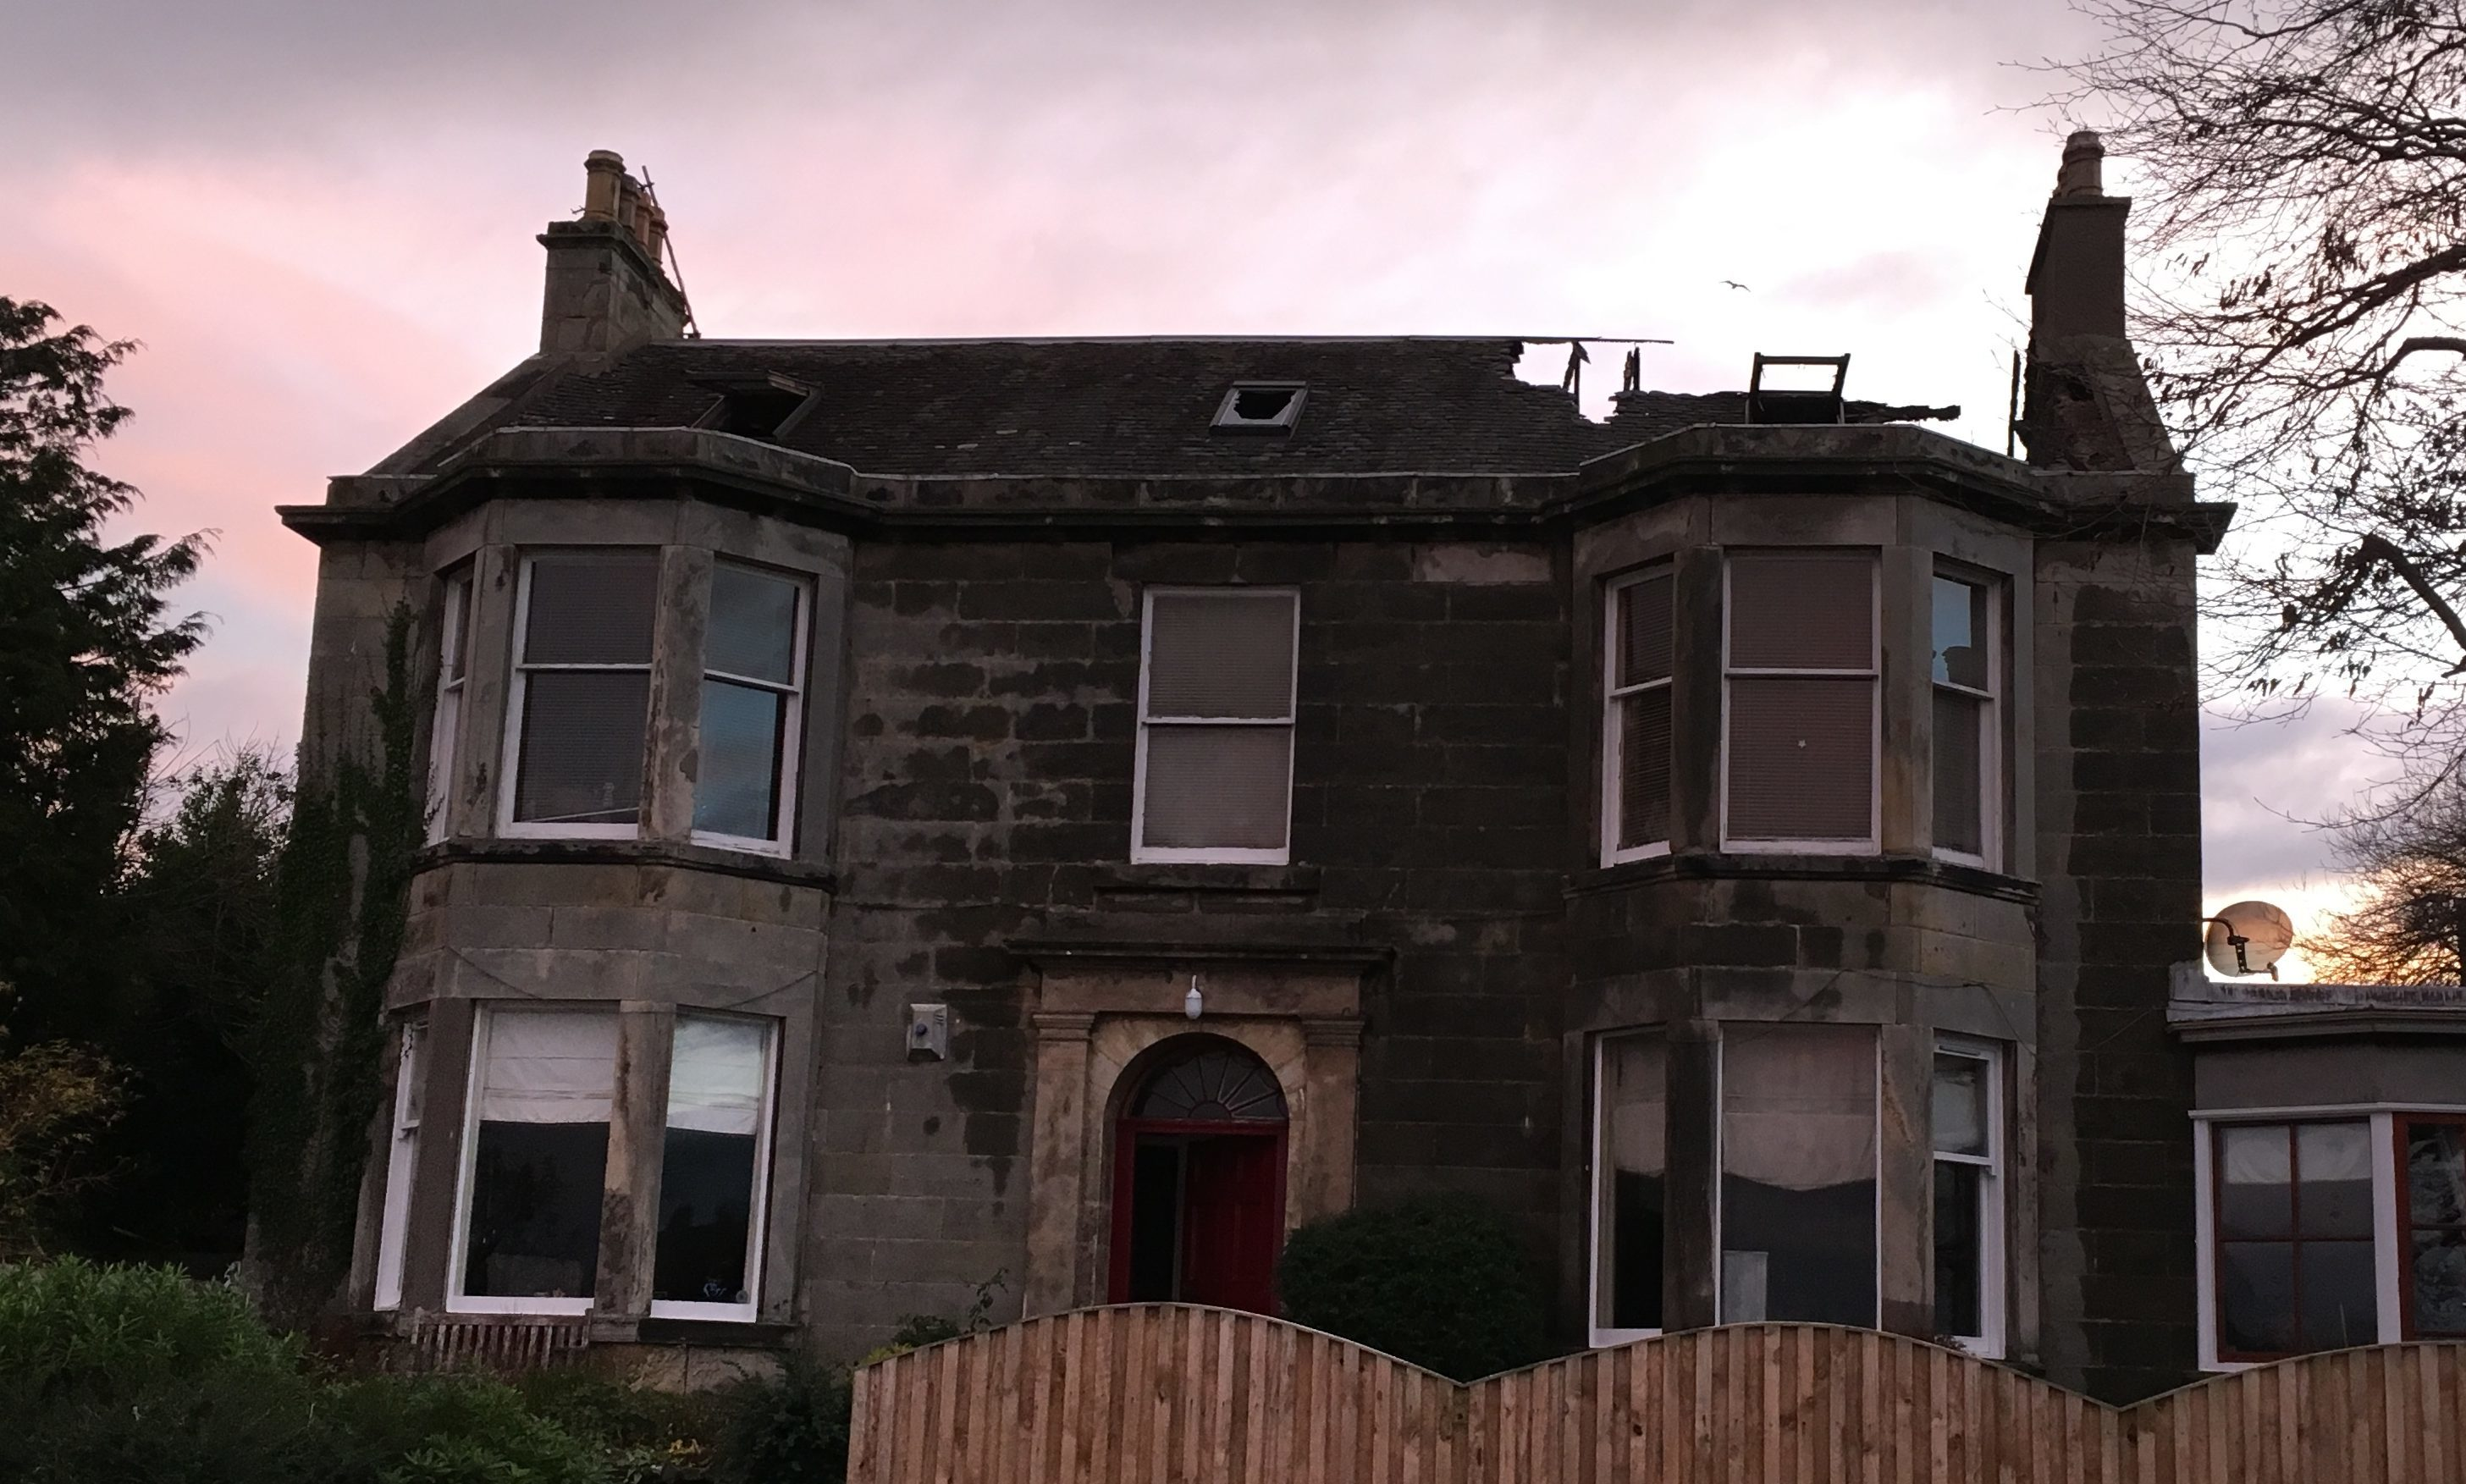 The villa sustained major damage in the blaze.